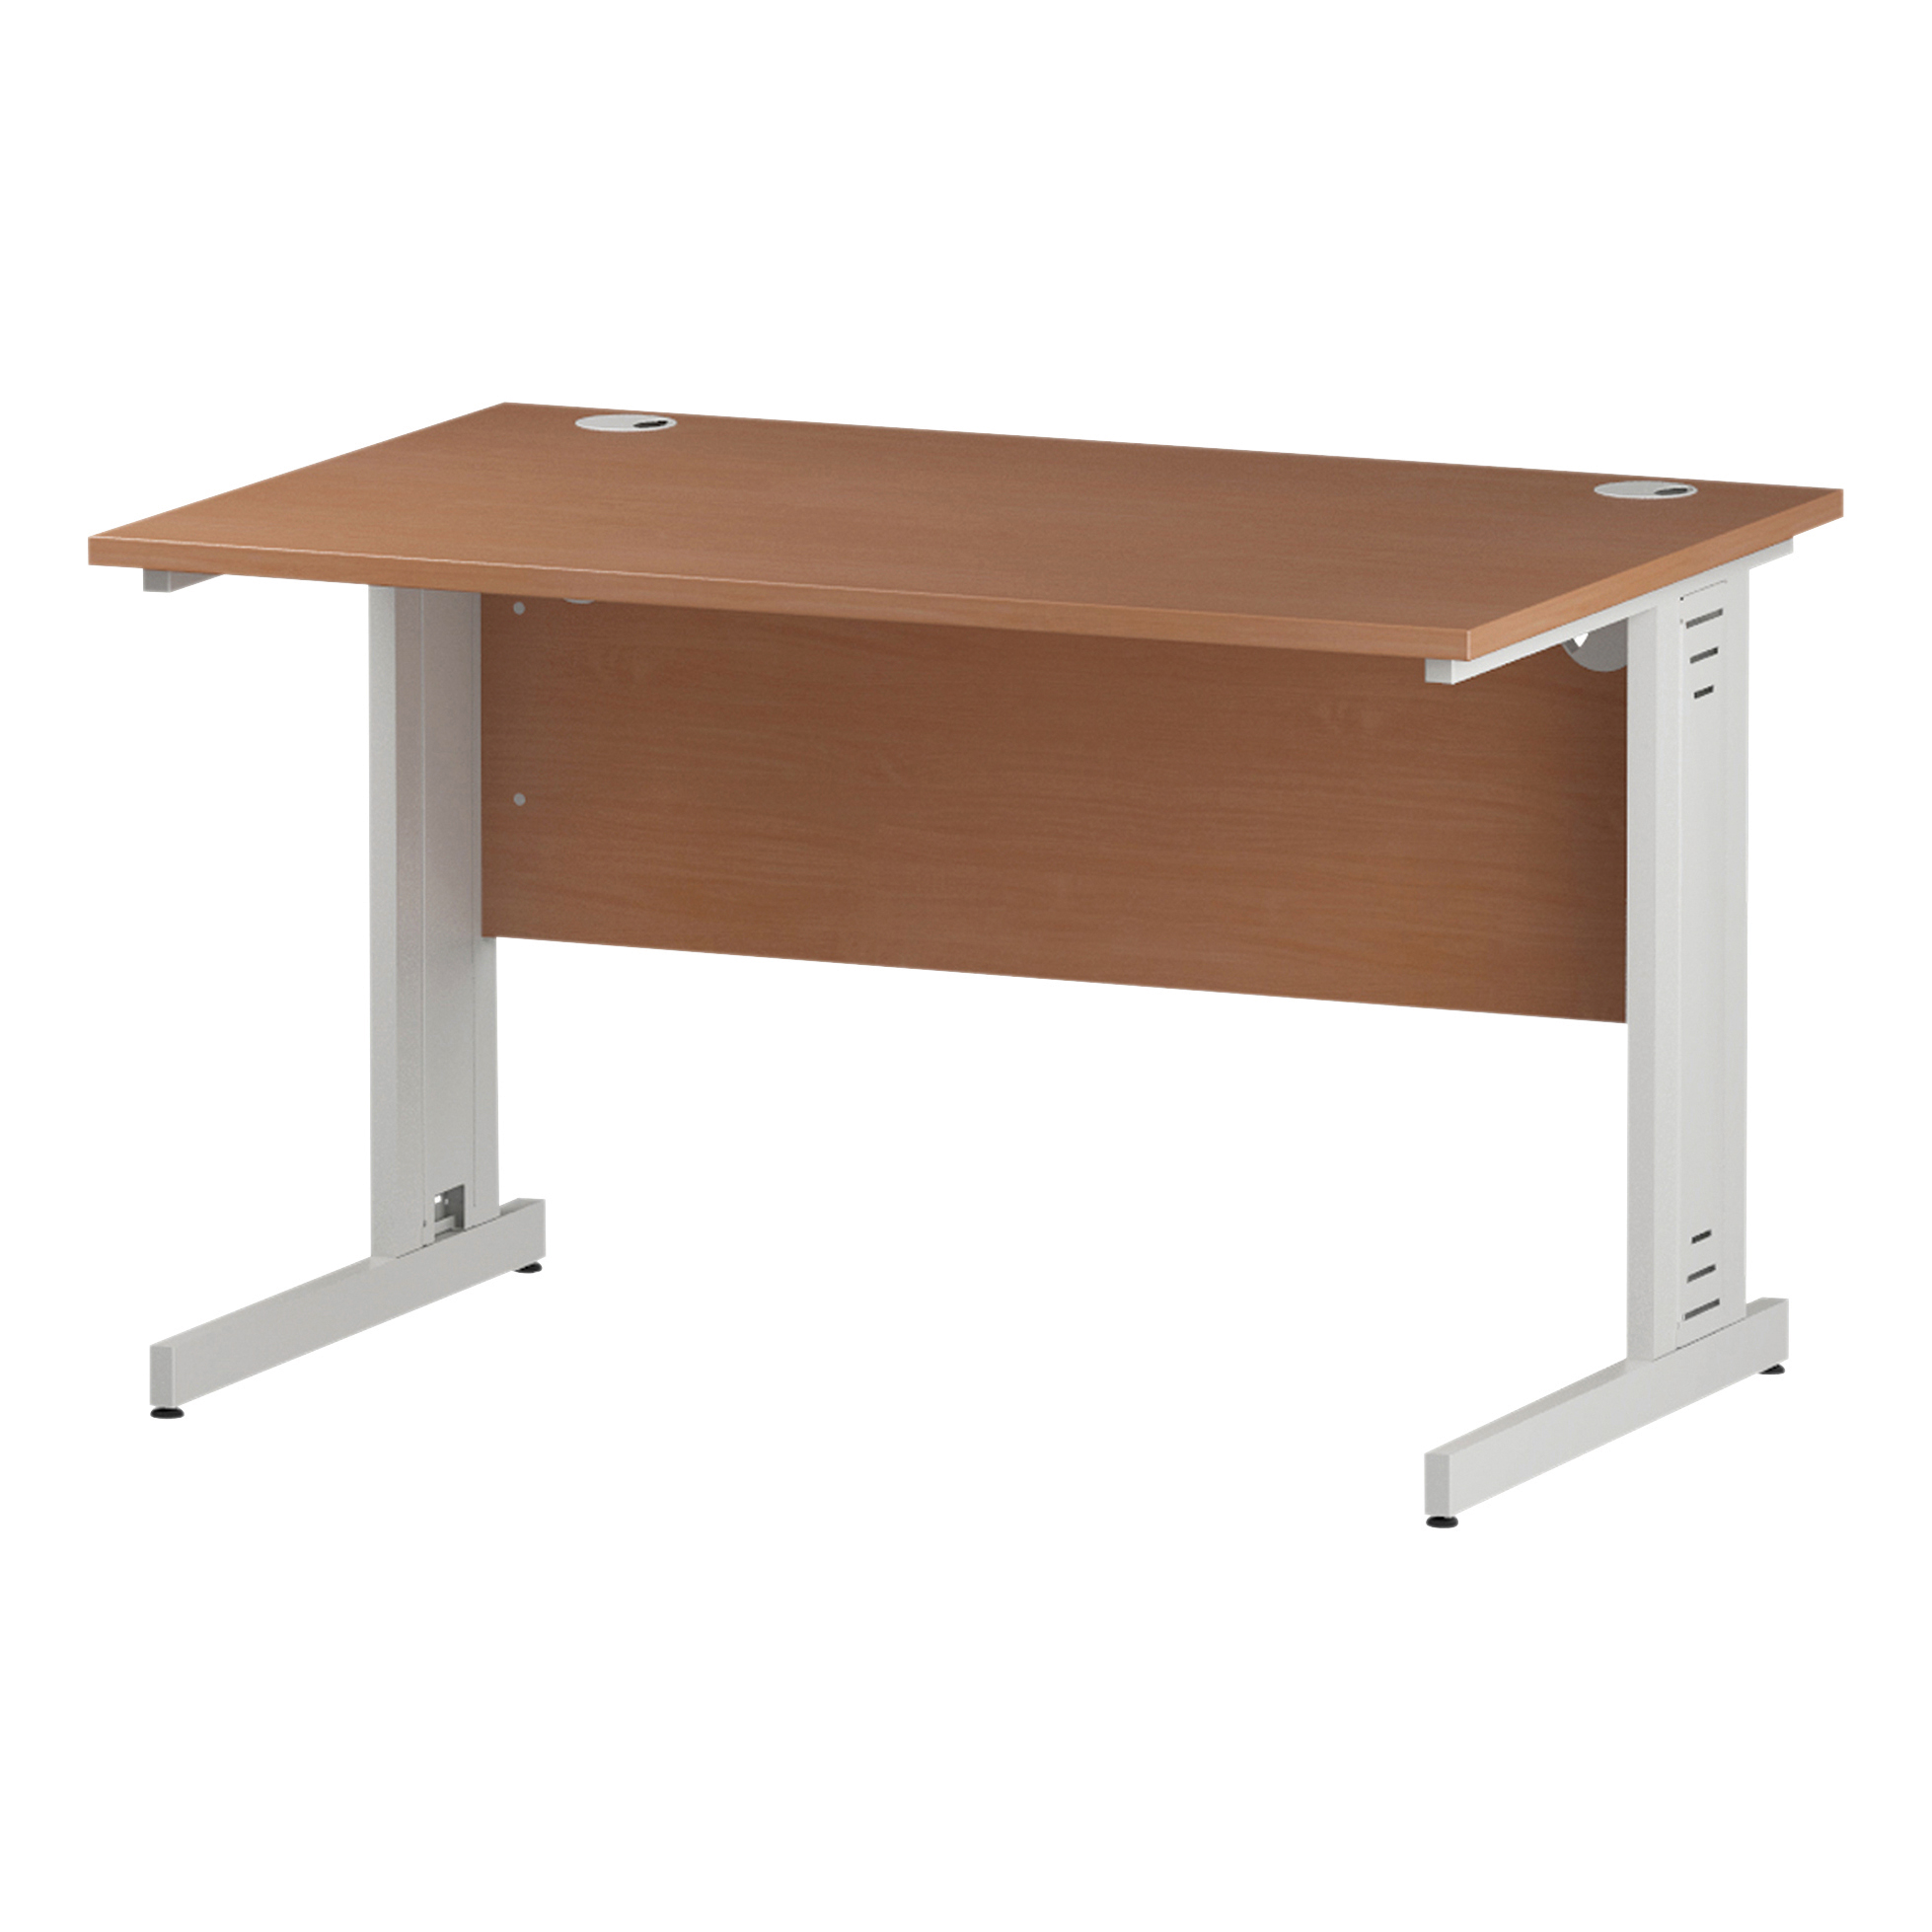 Trexus Rectangular Desk White Cable Managed Leg 1200x800mm Beech Ref I001754